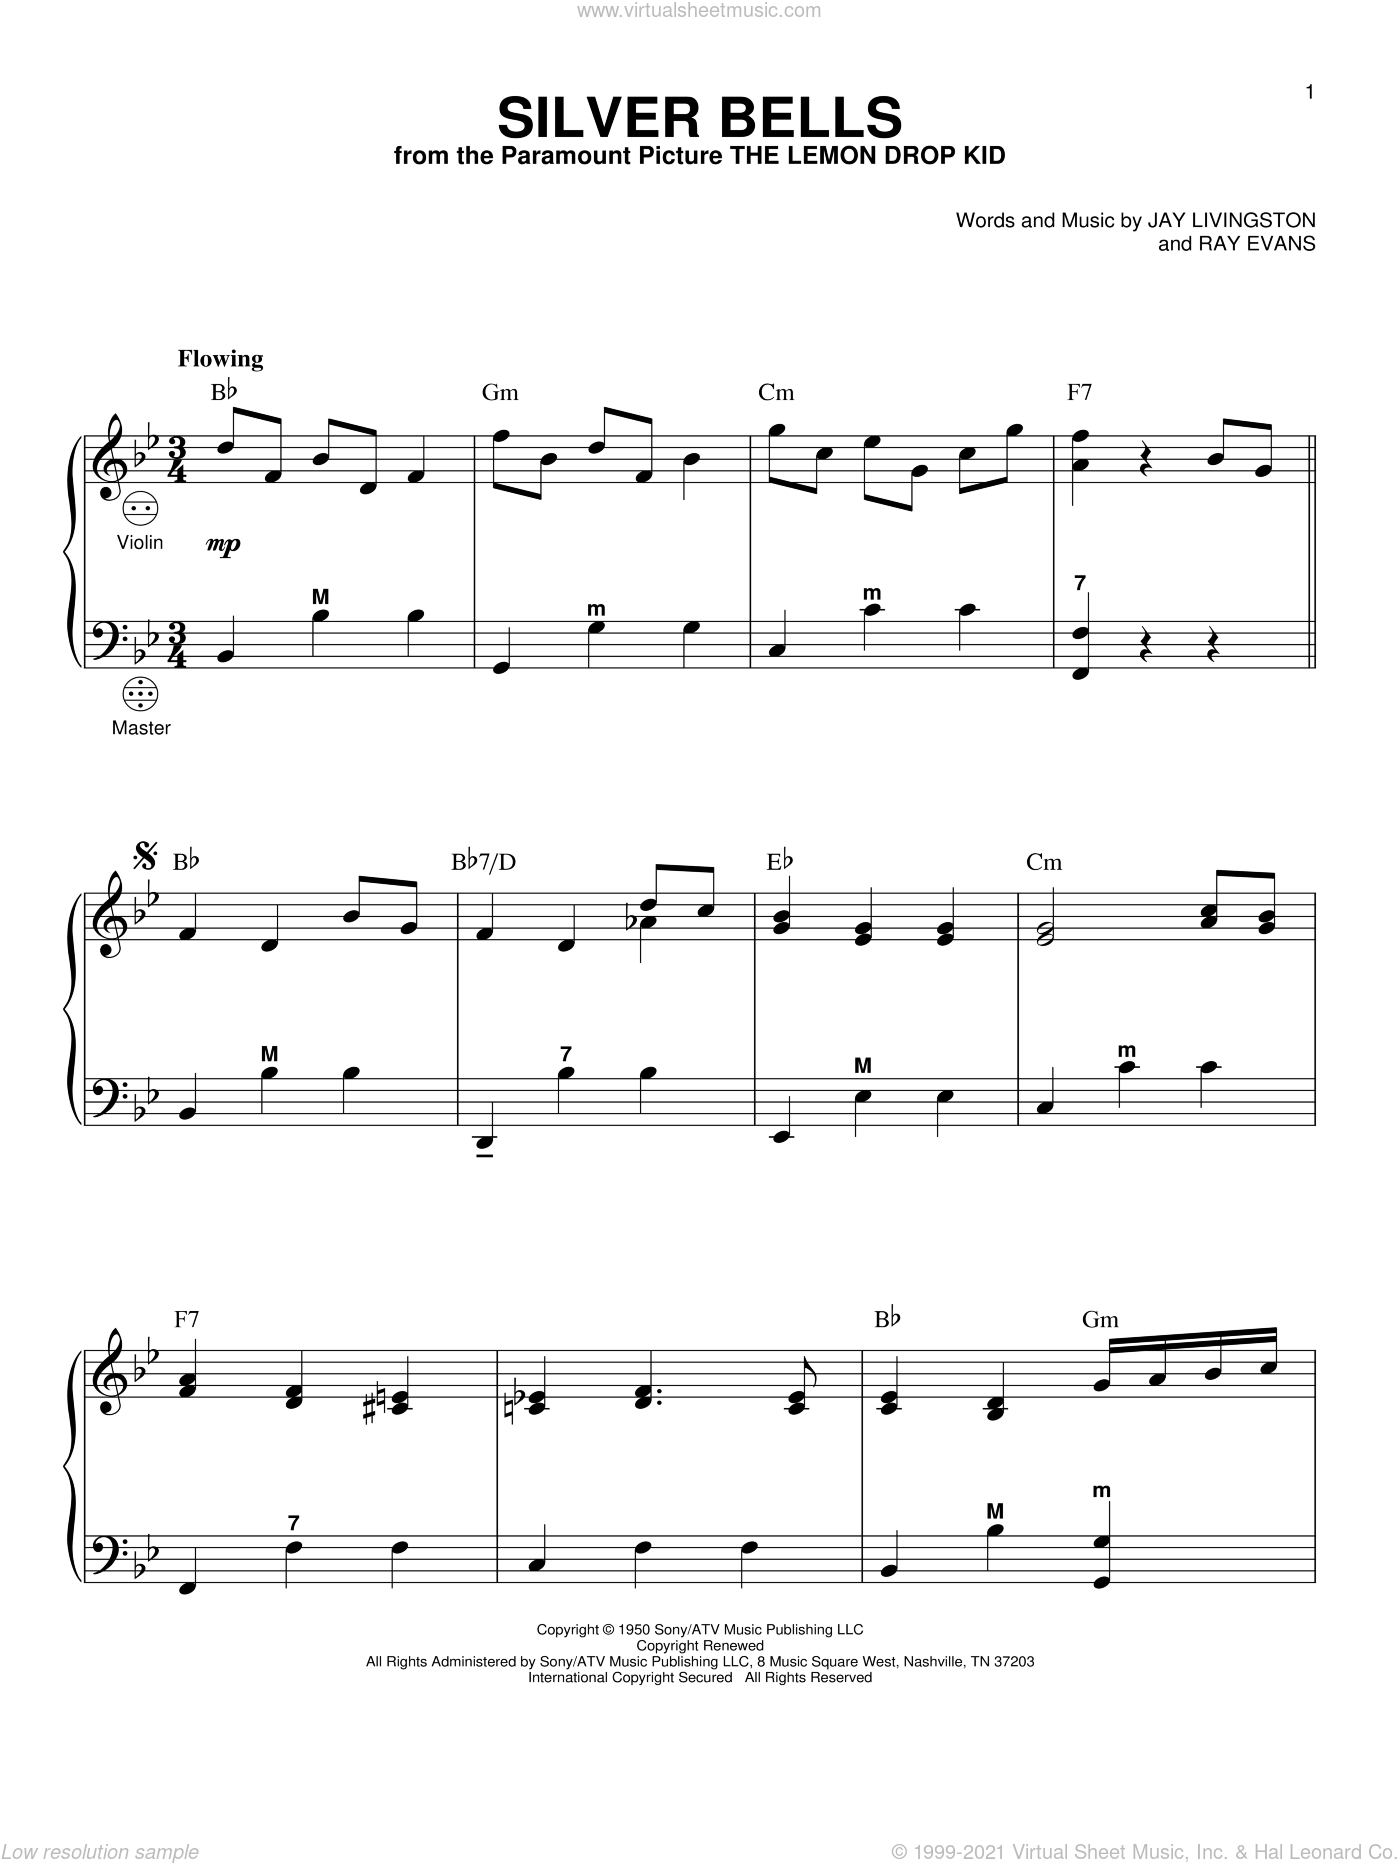 Silver Bells sheet music for accordion by Ray Evans